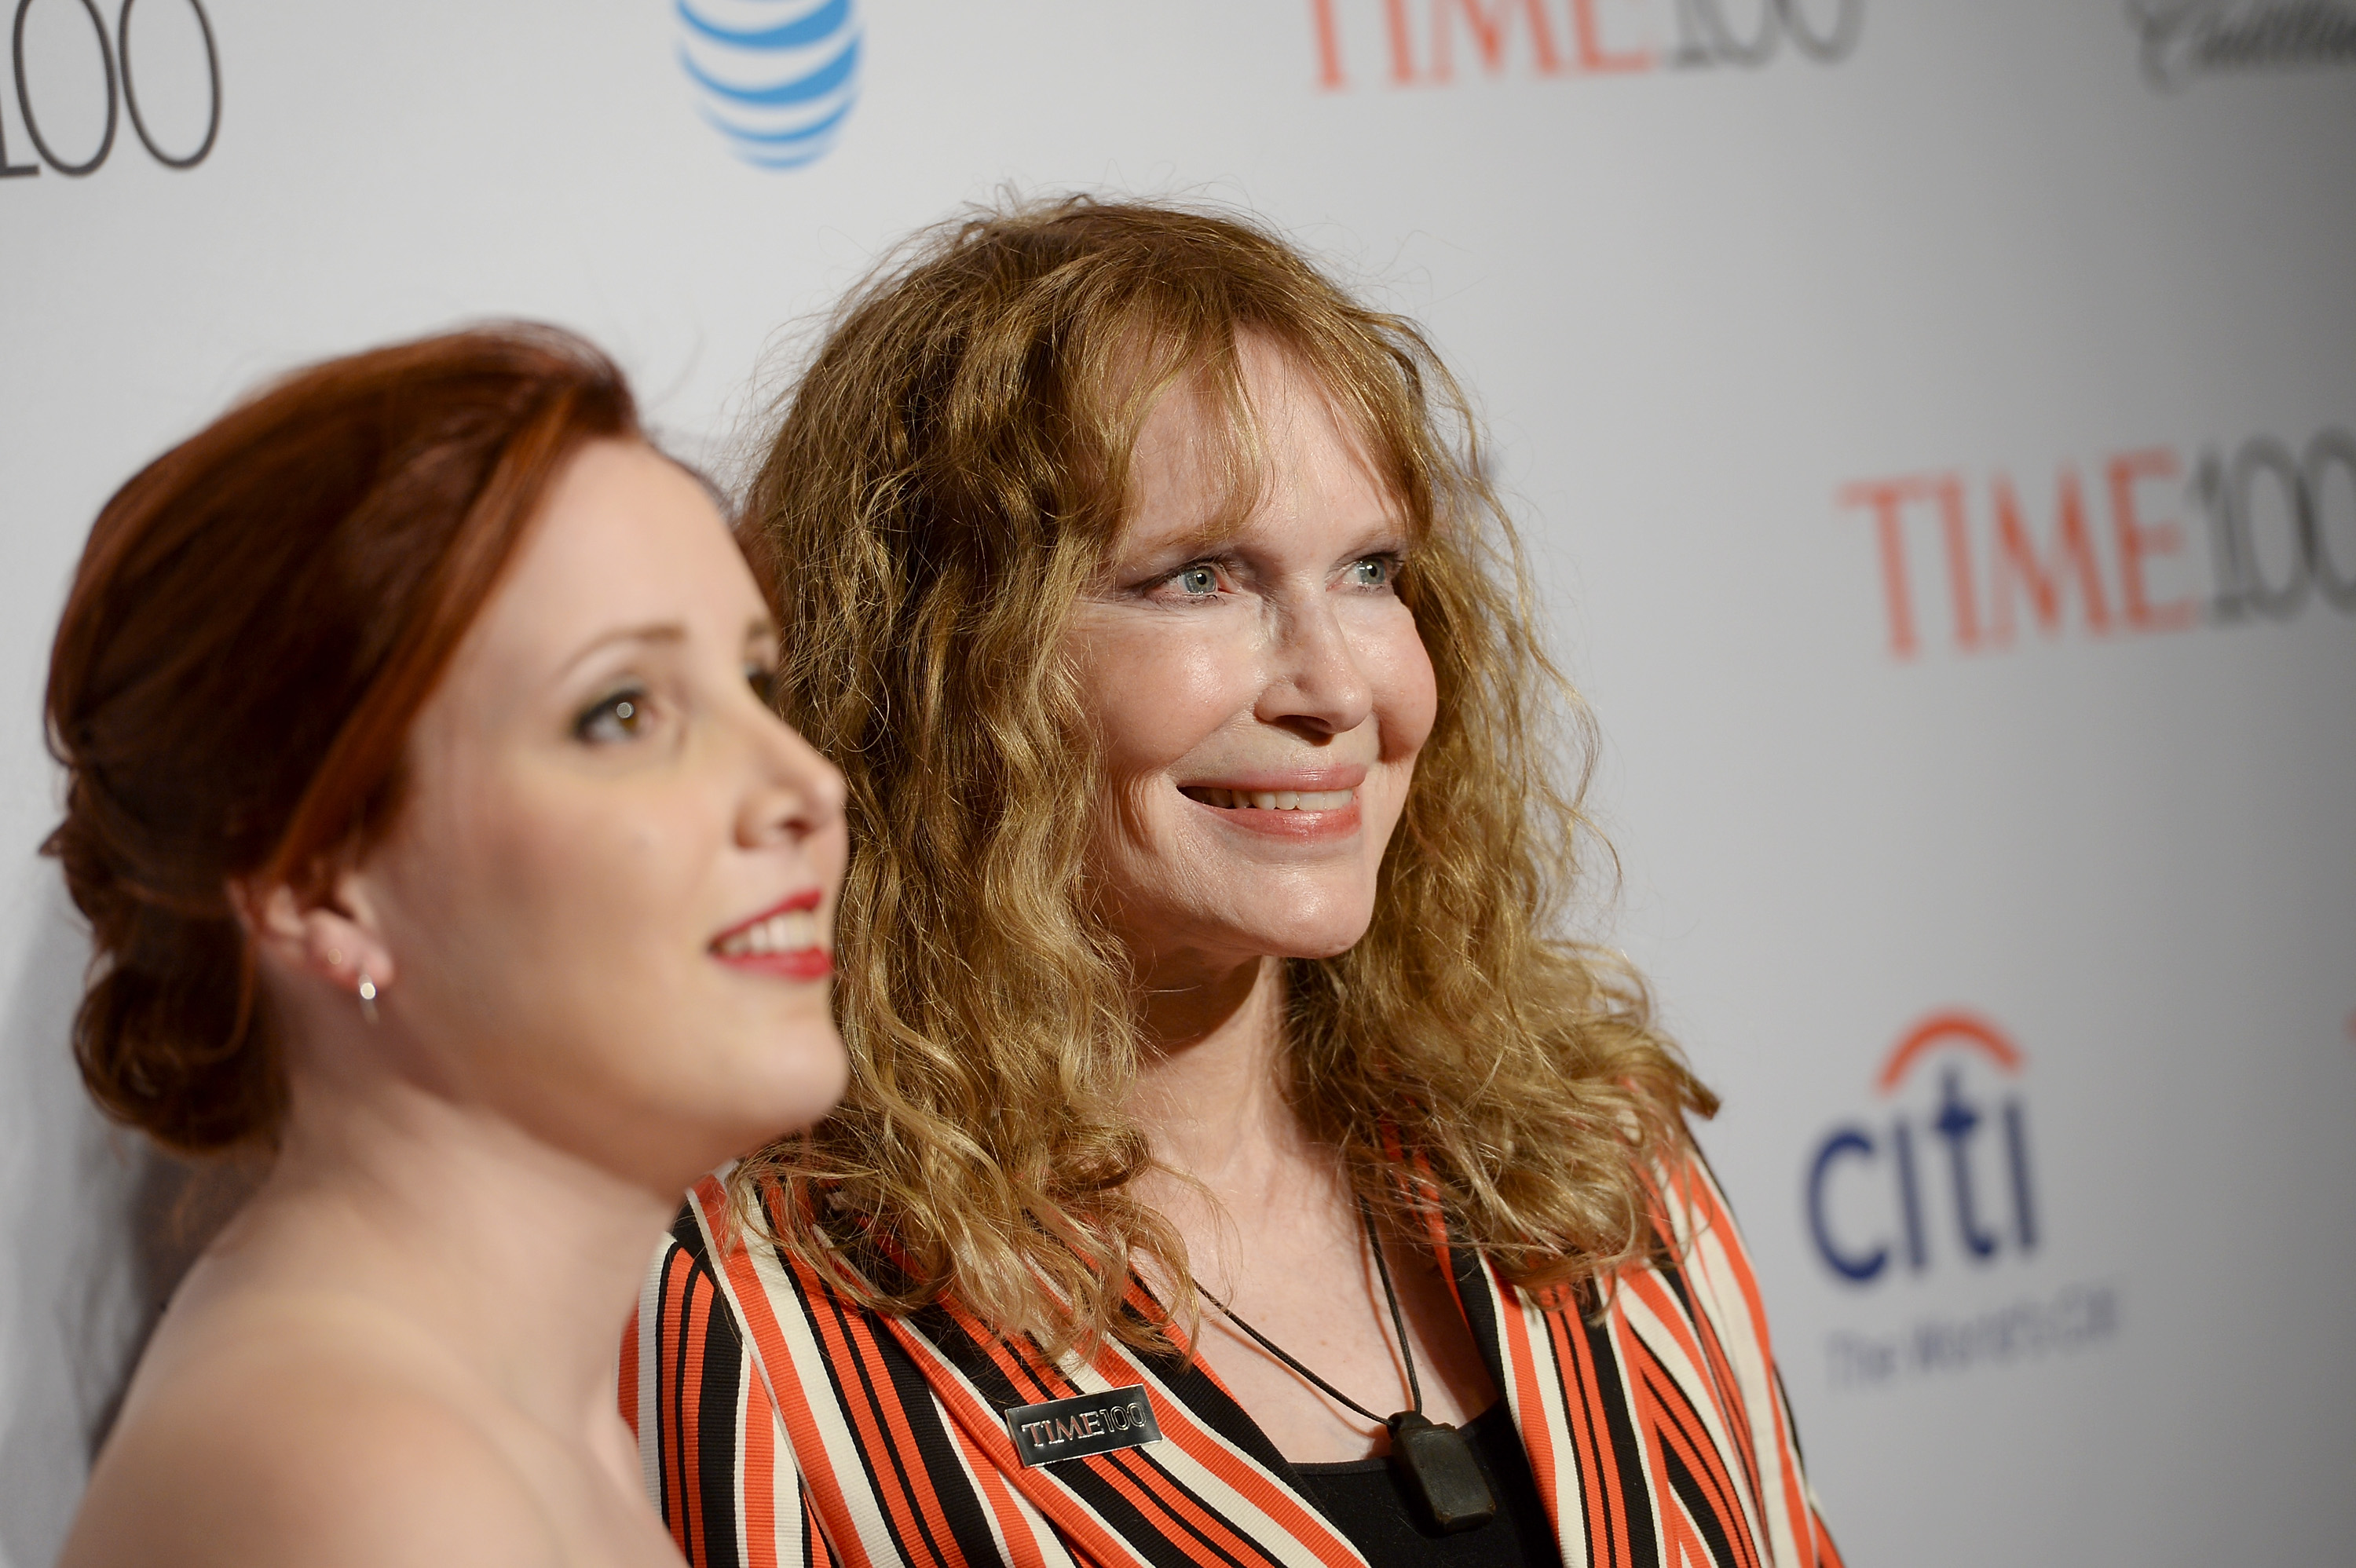 Dylan Farrow Makes Powerful Statement On Woody Allen & Golden Globes